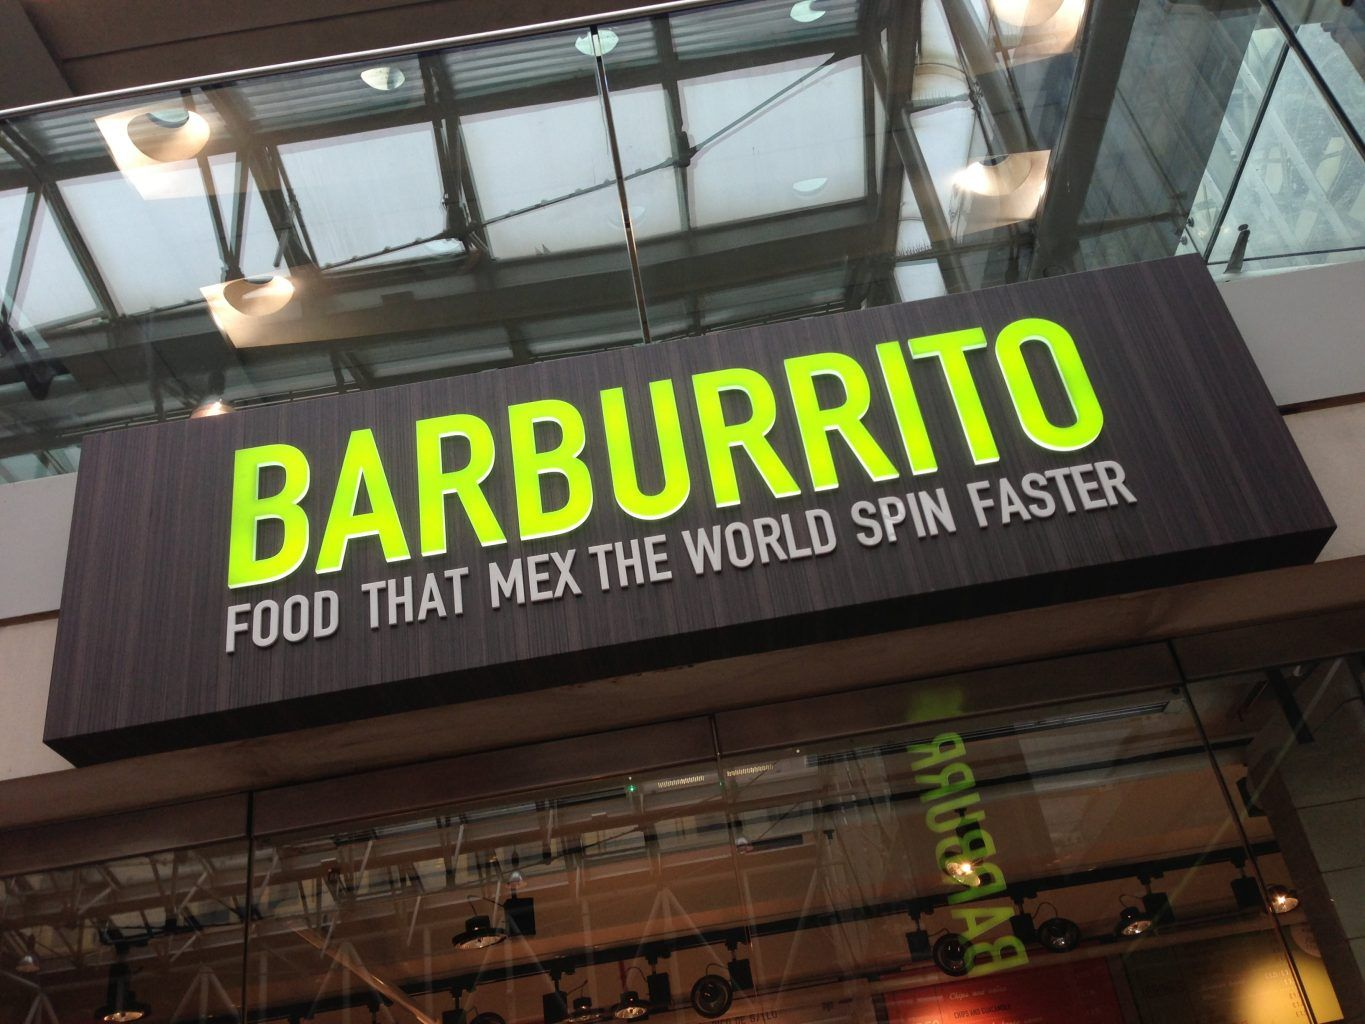 BARBURRITO Fret cut composite tray sign with push through acrylic letters